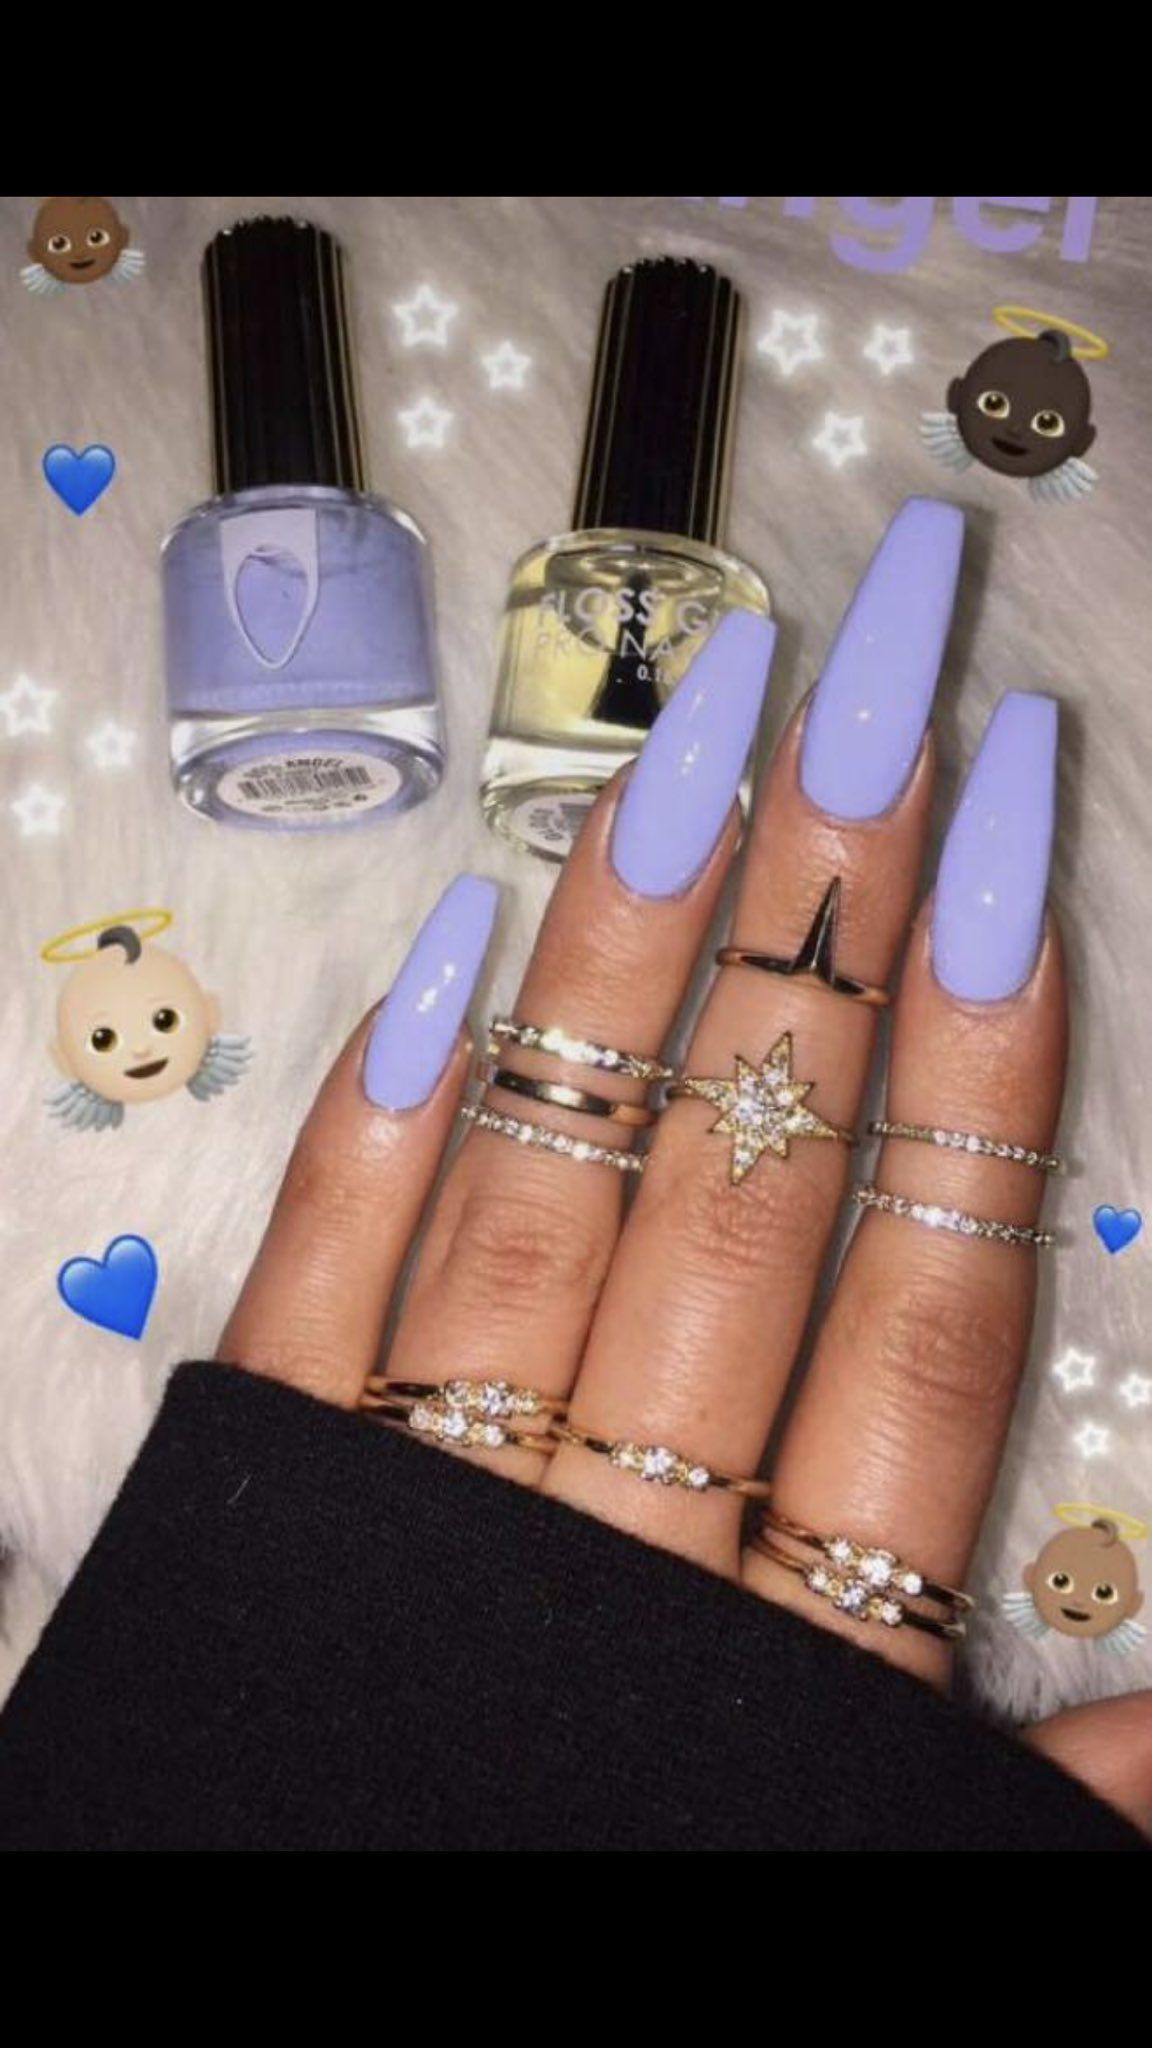 Avry On In 2020 Cute Acrylic Nails Aycrlic Nails Purple